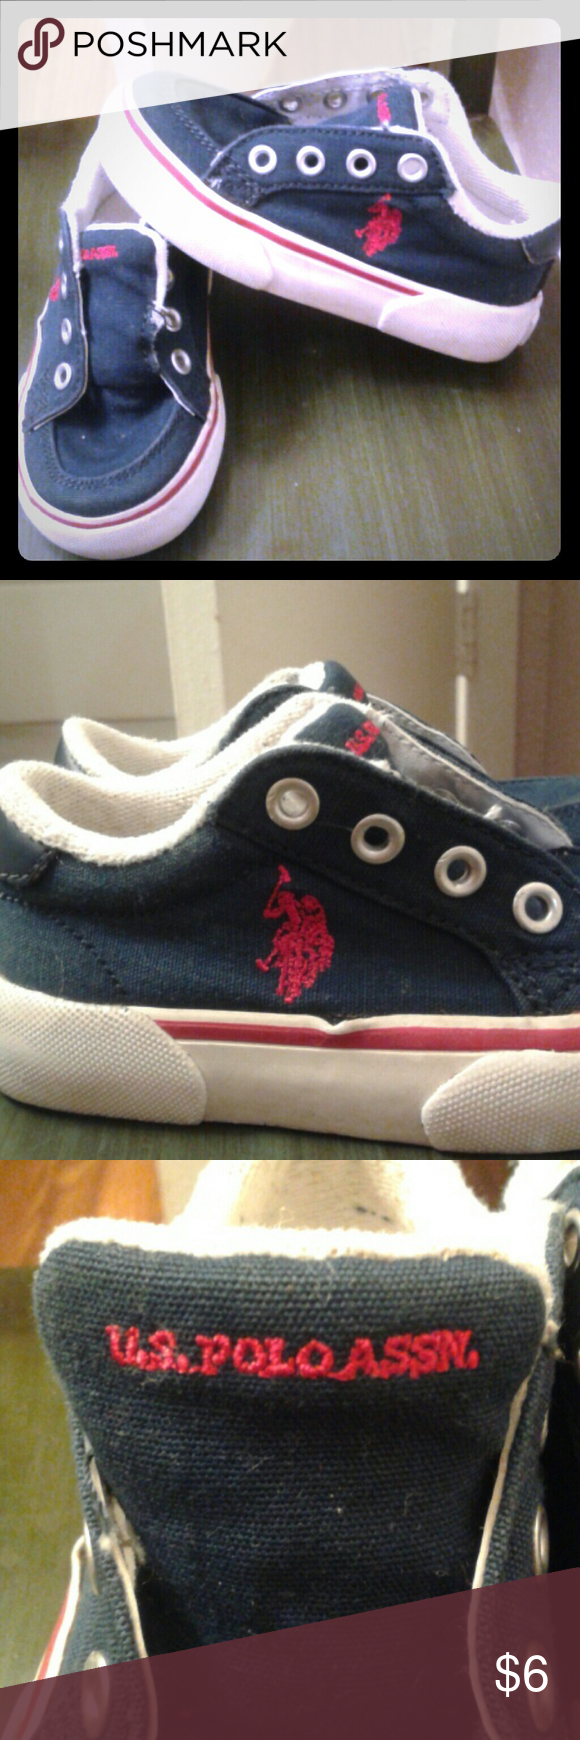 U.S. Polo Assn. Shoes Nice copy shoes for your infant. U.S. Polo Assn. Shoes Sneakers